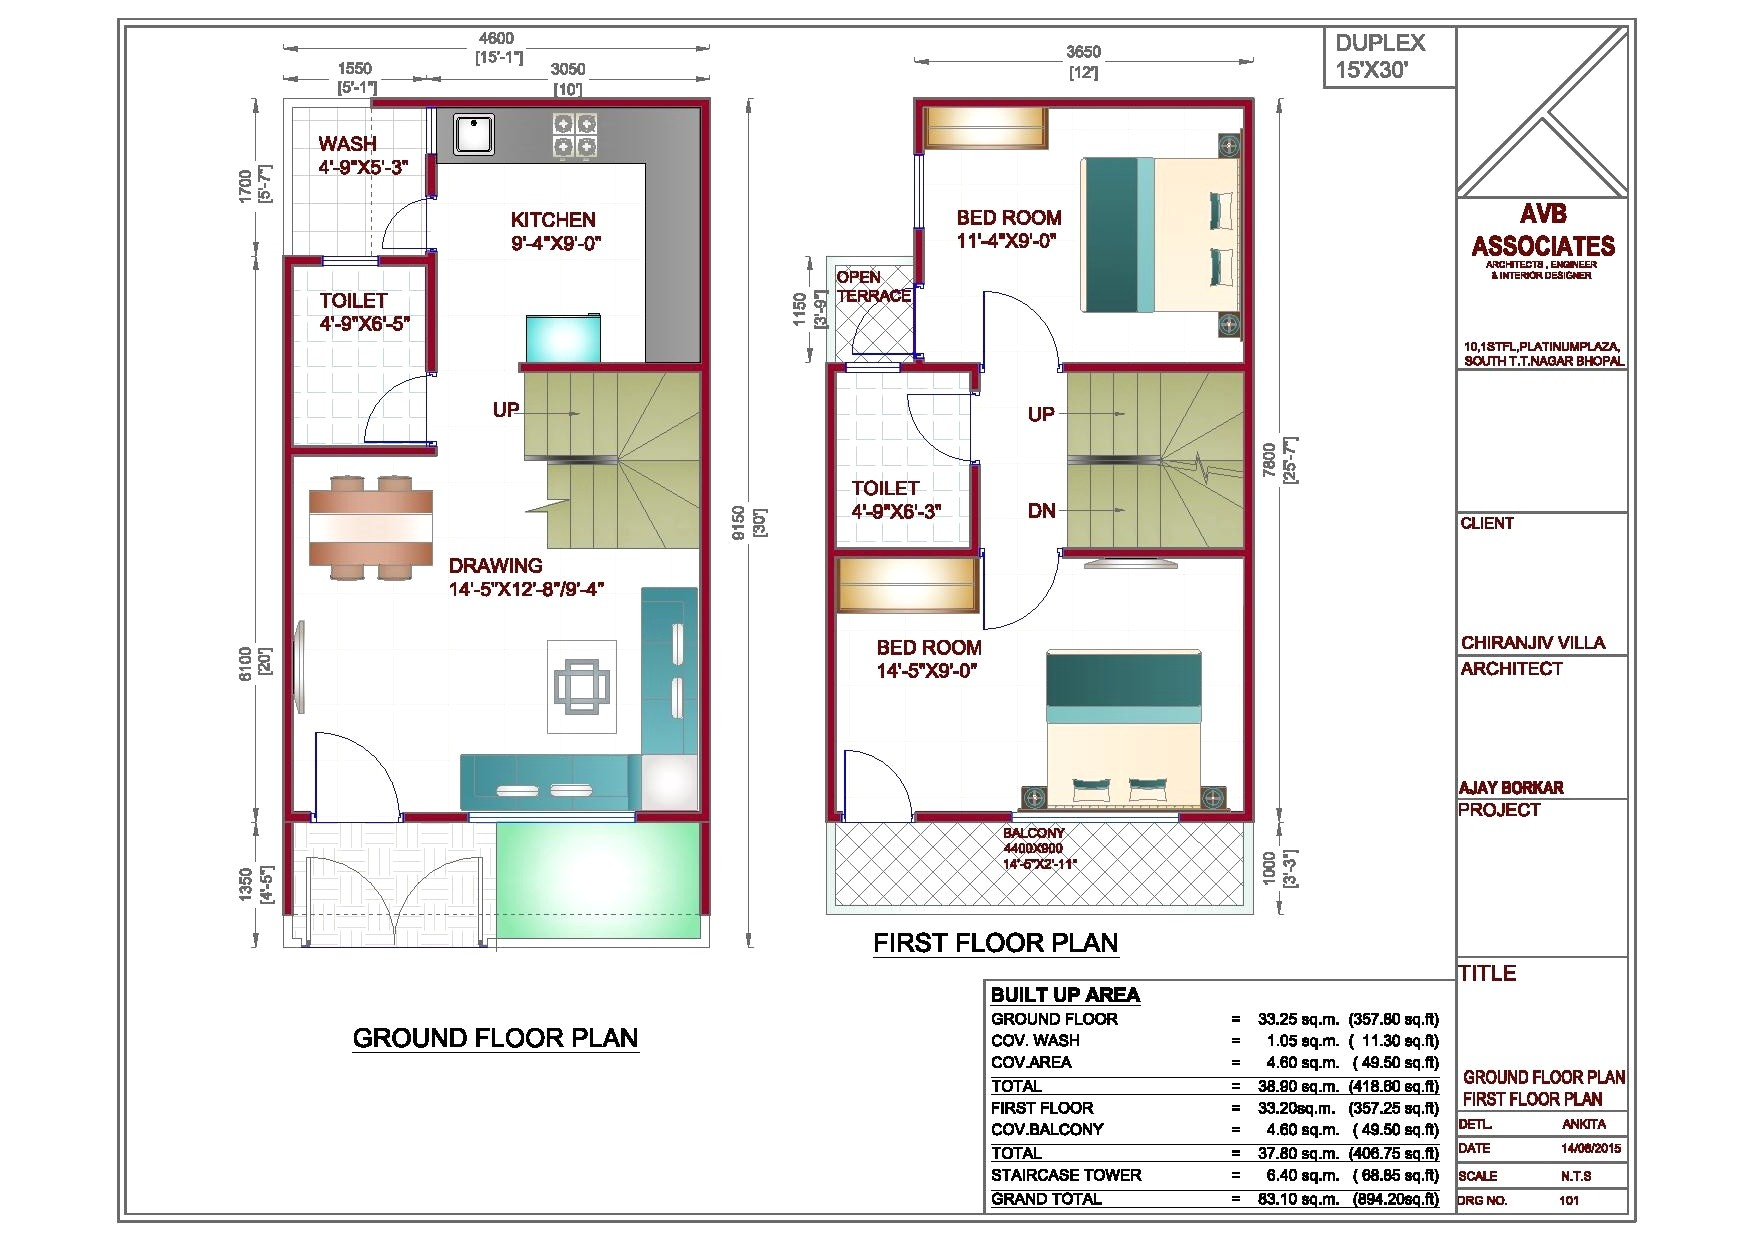 House Plan for 20×40 Site 20 X 40 Duplex House Plans ... on 12 x 16 house plans, 12 x 36 house plans, 16 x 10 house plans, 14 x 40 house plans, 24 x 40 floor plans, 16 by 40 cabin floor plans, 28 x 40 house plans, 20 x 20 shed building plans, 16x40 home floor plans, 14 x 14 kitchen floor plans, 16 x 60 house plans, sq ft. house plans, 70 x 40 house plans, 16 x 20 house plans, 15 x 30 house plans, 30 40 house floor plans, 30 50 house plans, 38 x 40 house plans, vastu east facing house plans, 26 x 80 house plans,